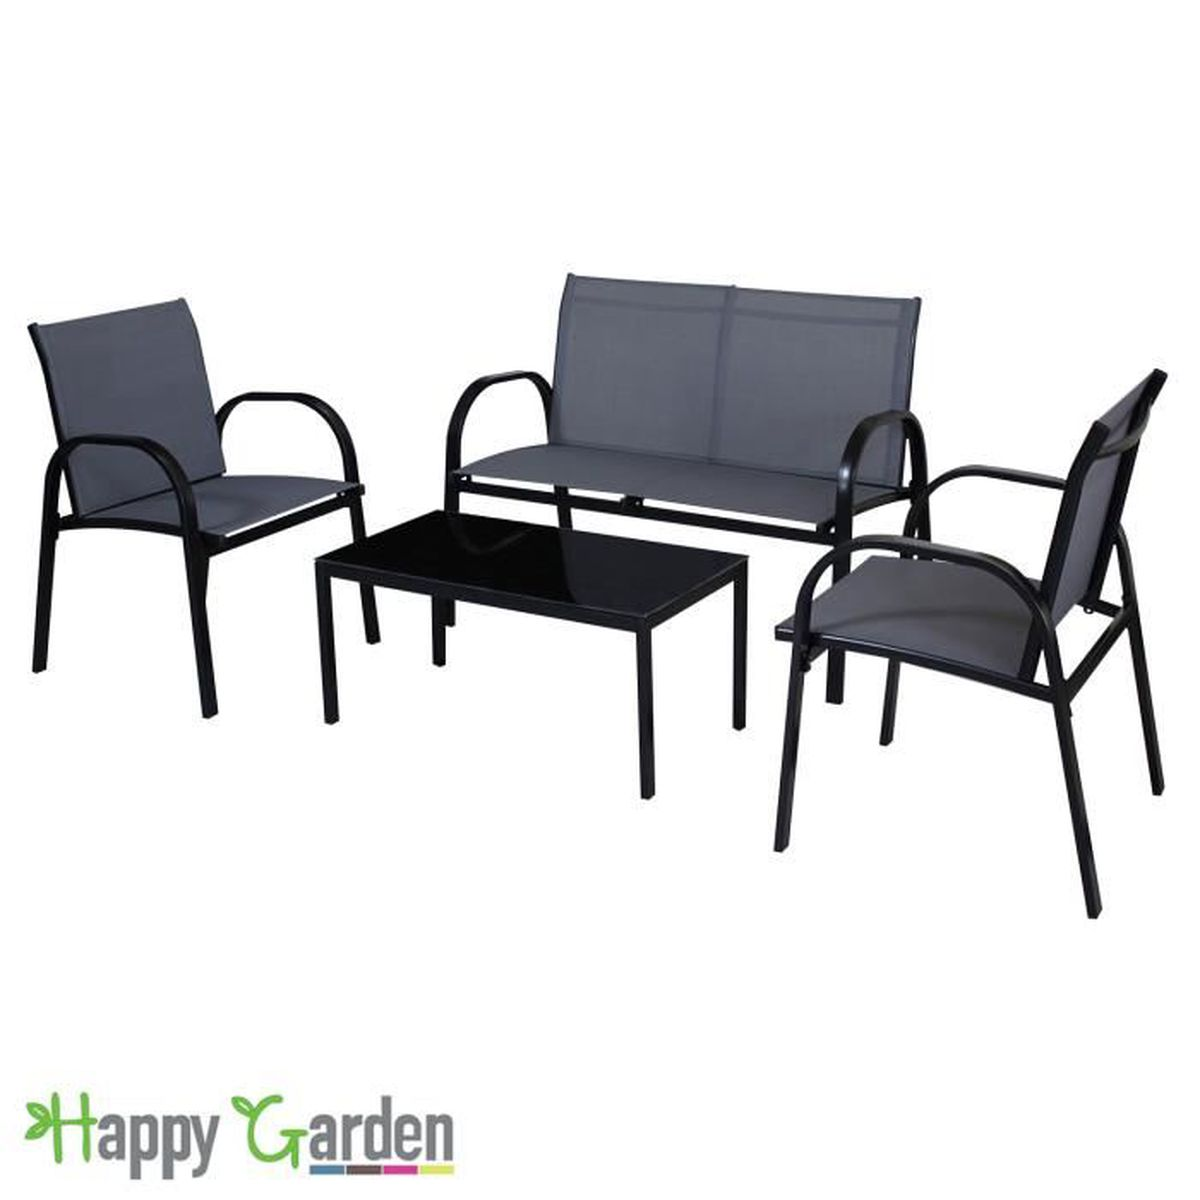 salon de jardin tenerife en textil ne gris structure noire achat vente salon de jardin. Black Bedroom Furniture Sets. Home Design Ideas